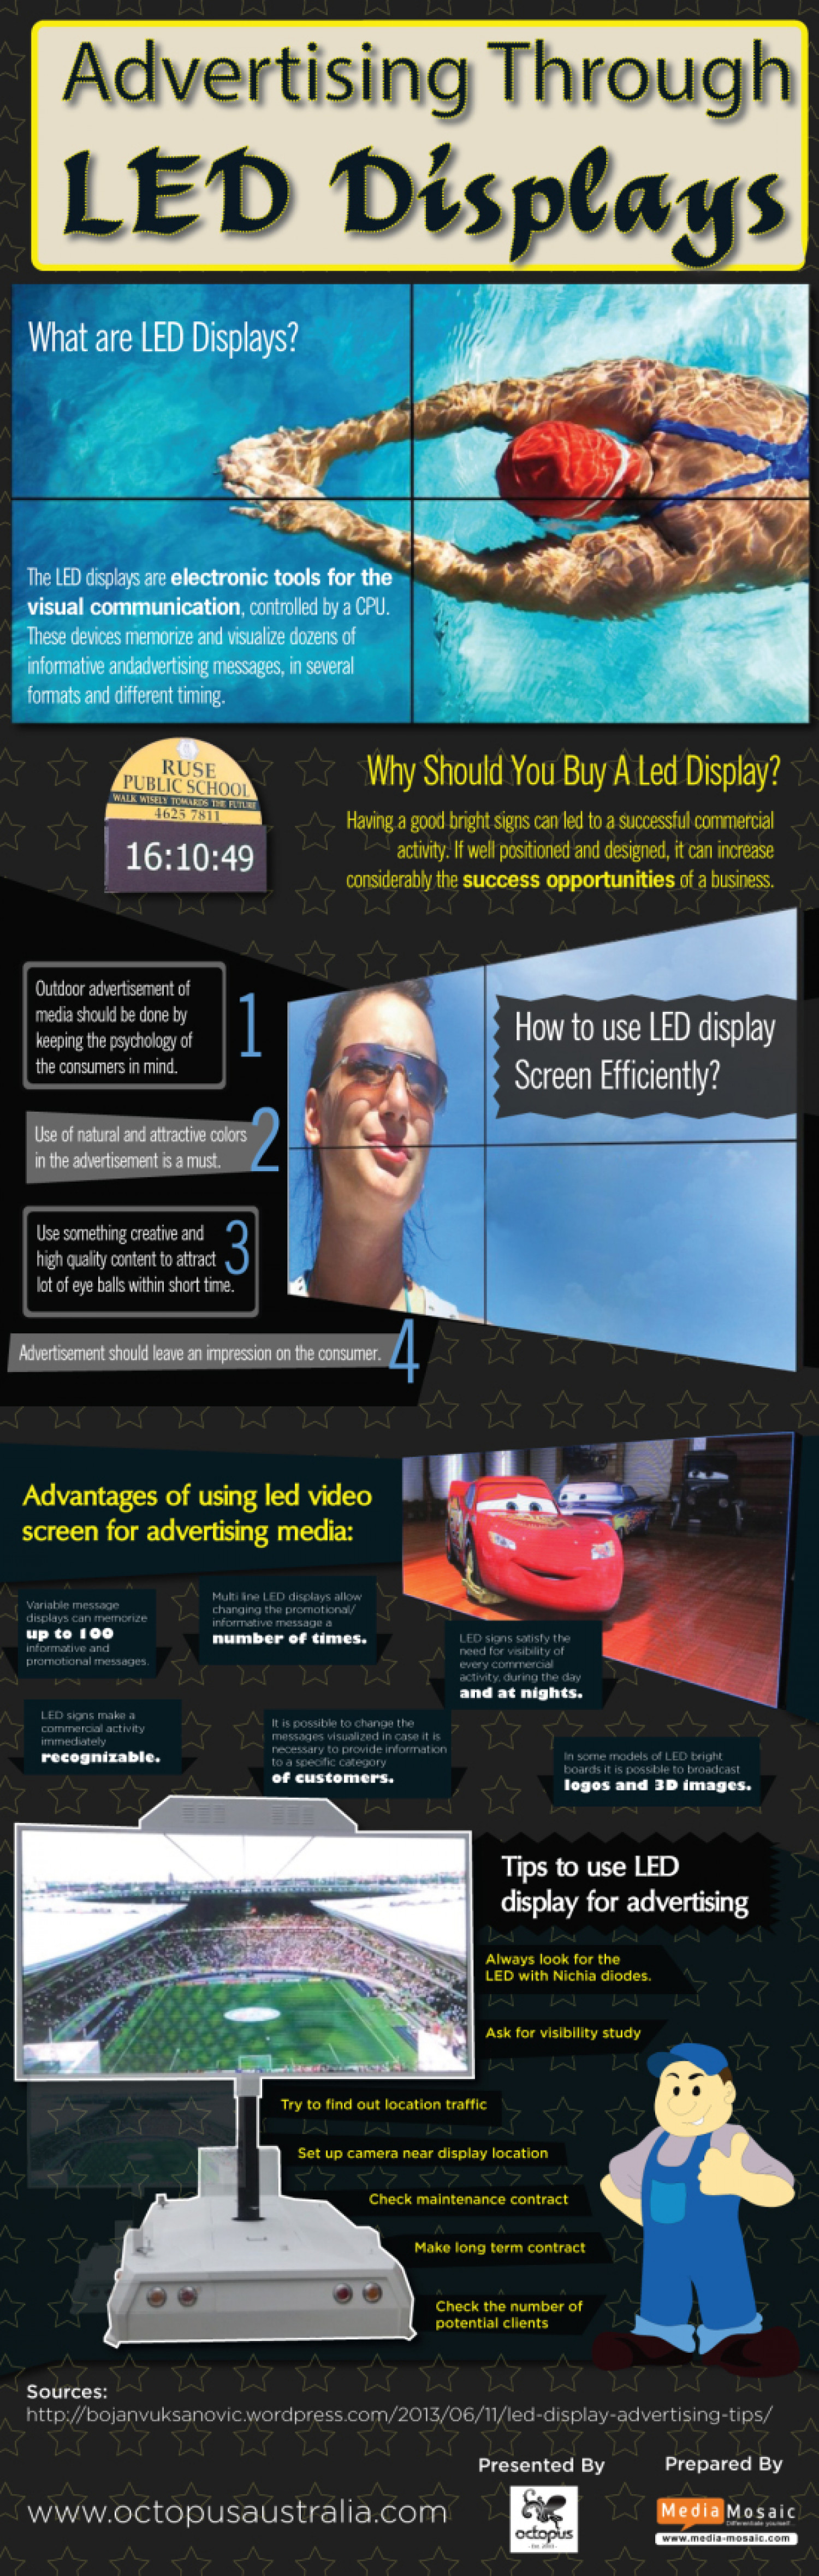 Advertising Through LED Displays Infographic